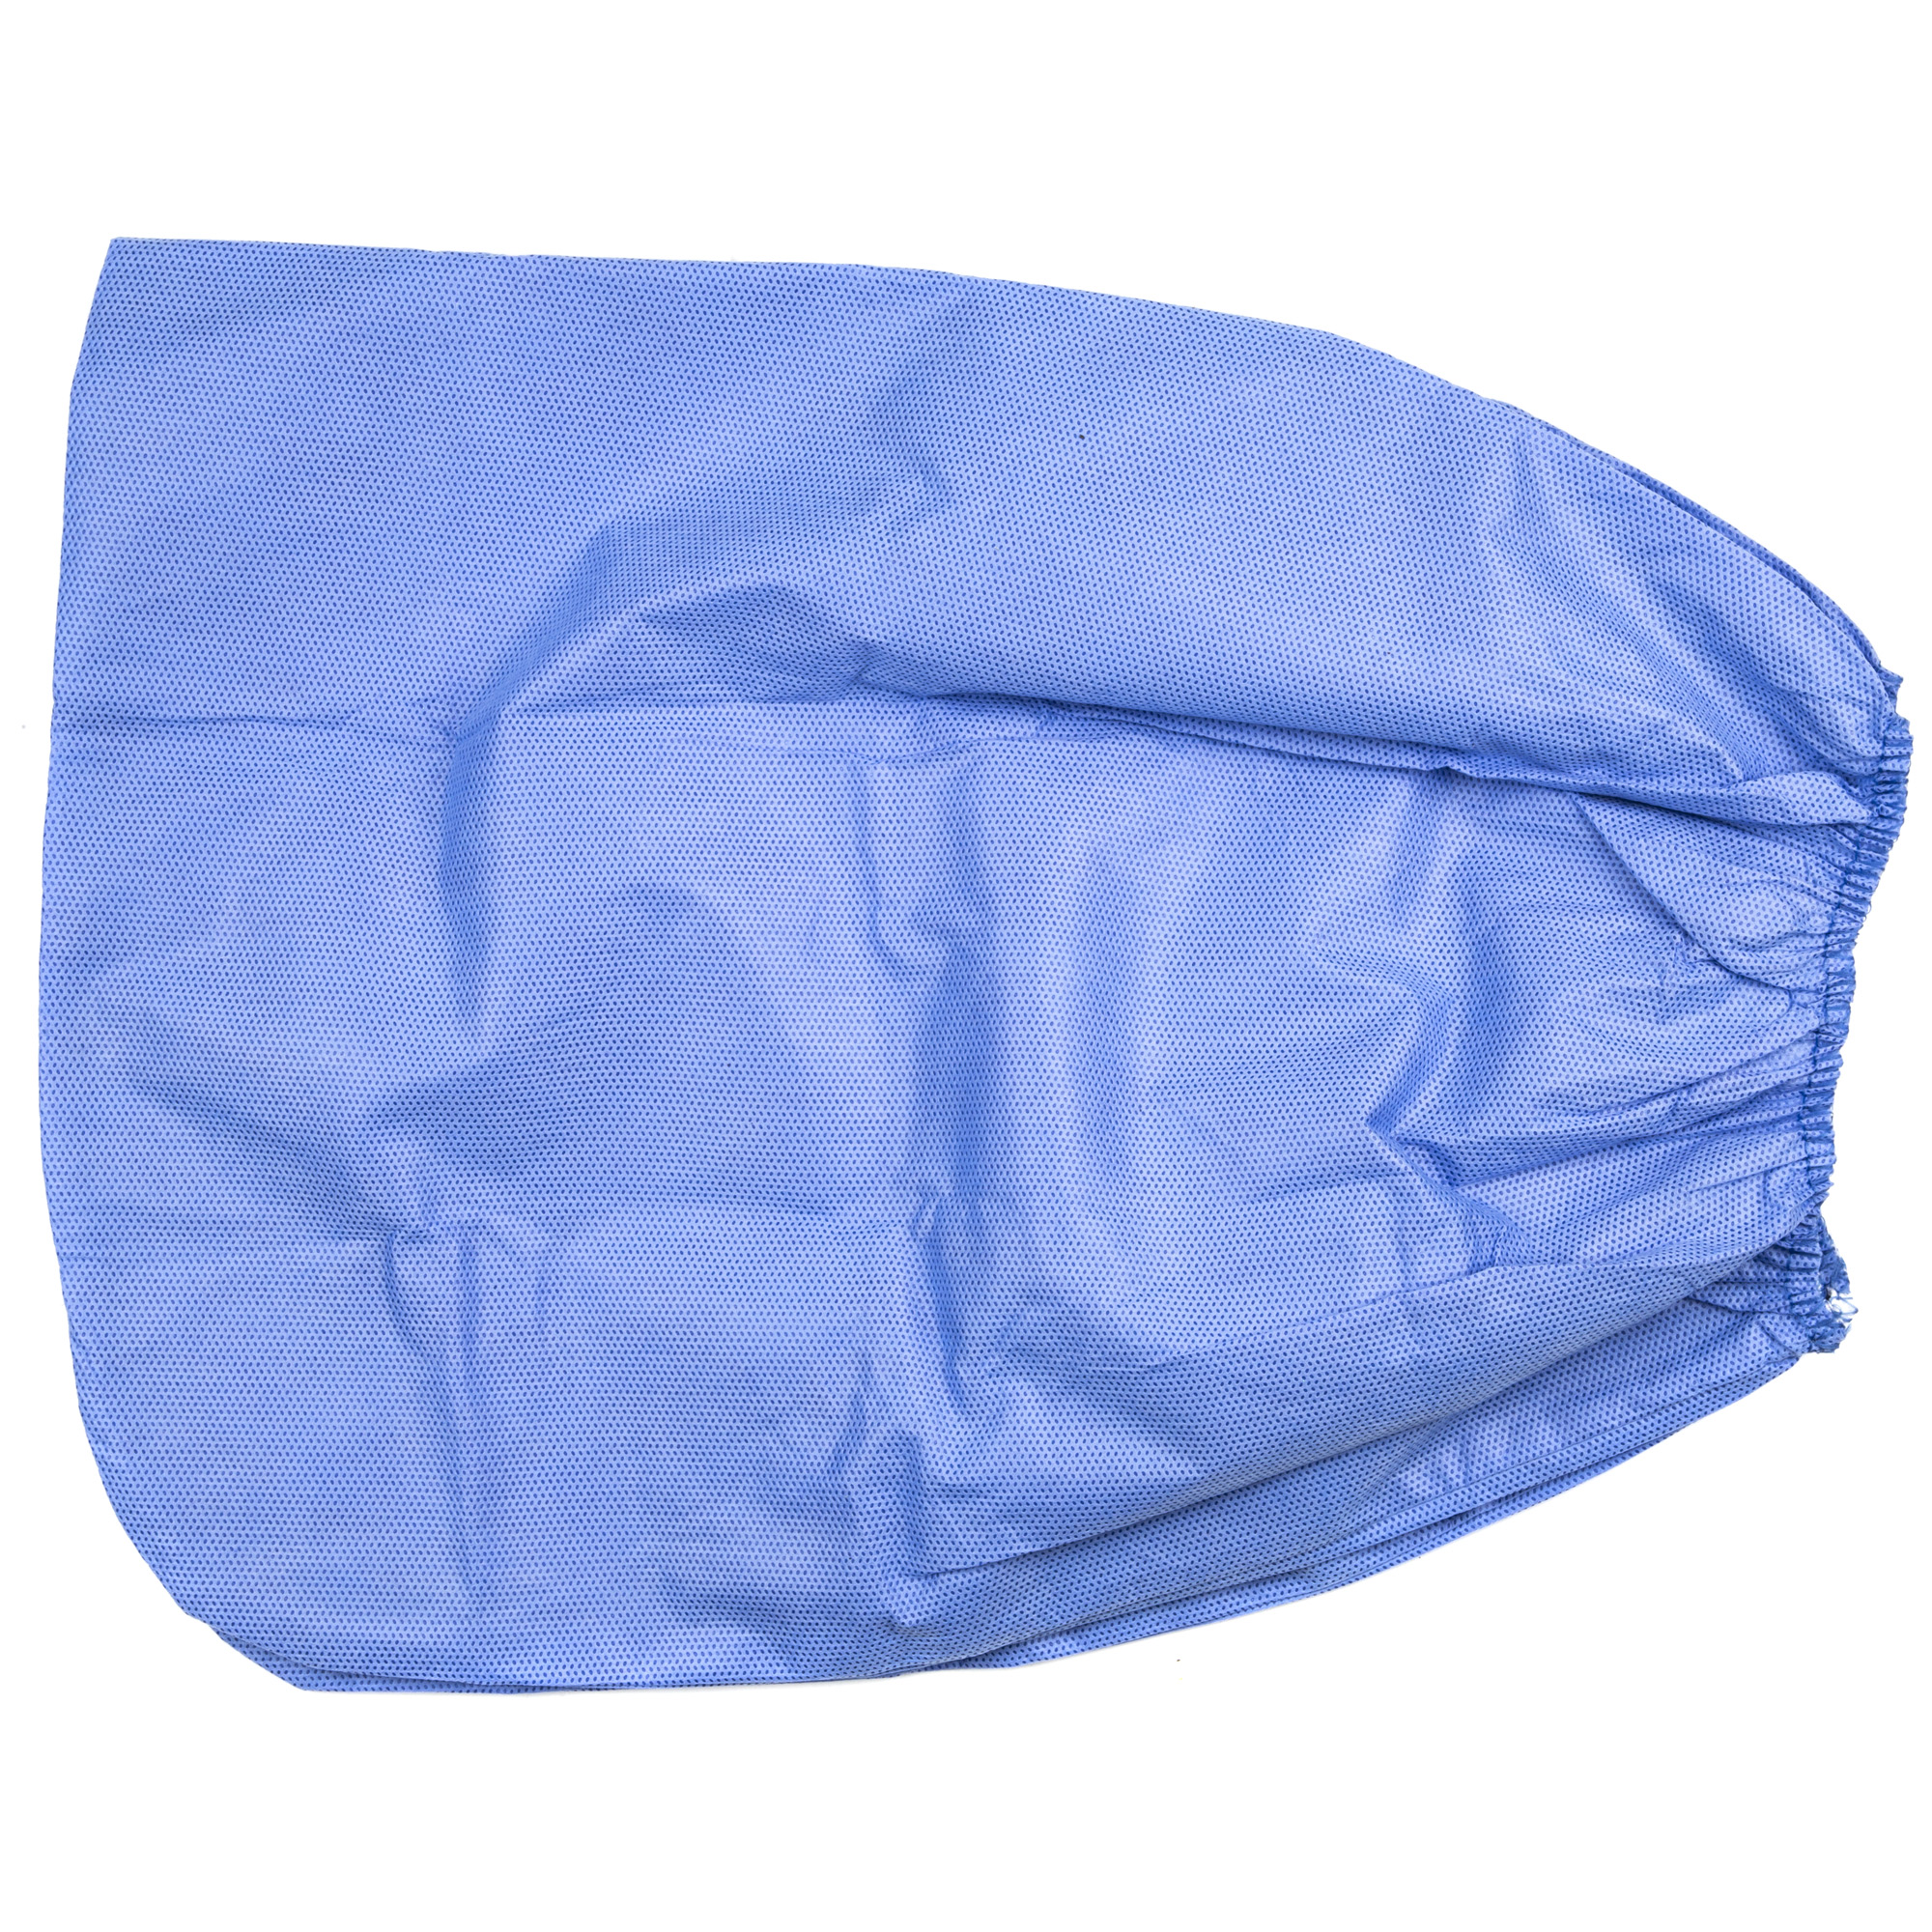 North Bootie Shoe Cover Universal